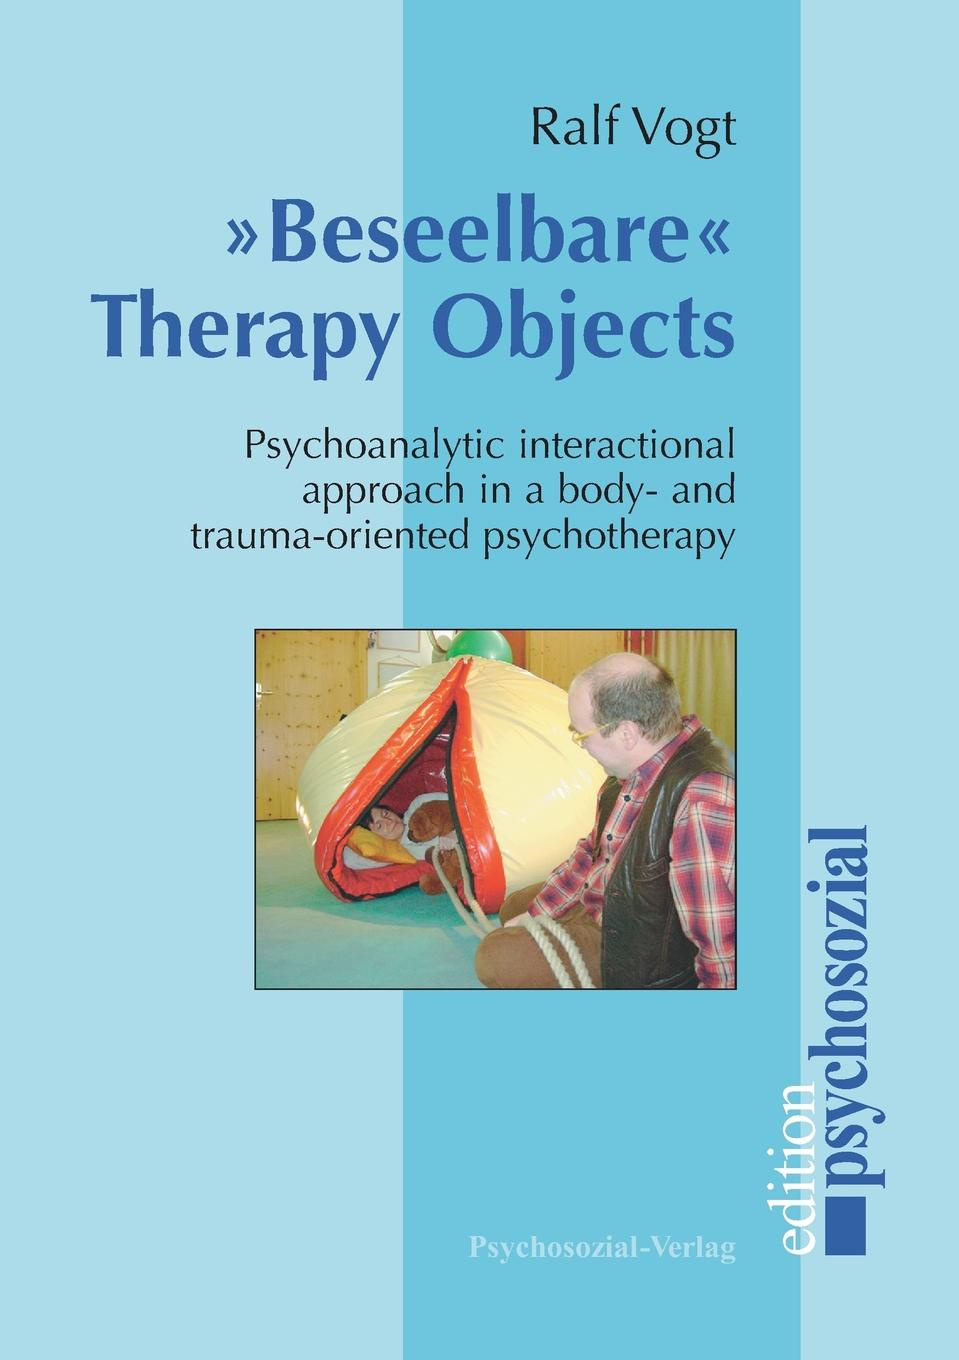 Ralf Vogt Beseelbare Therapy Objects